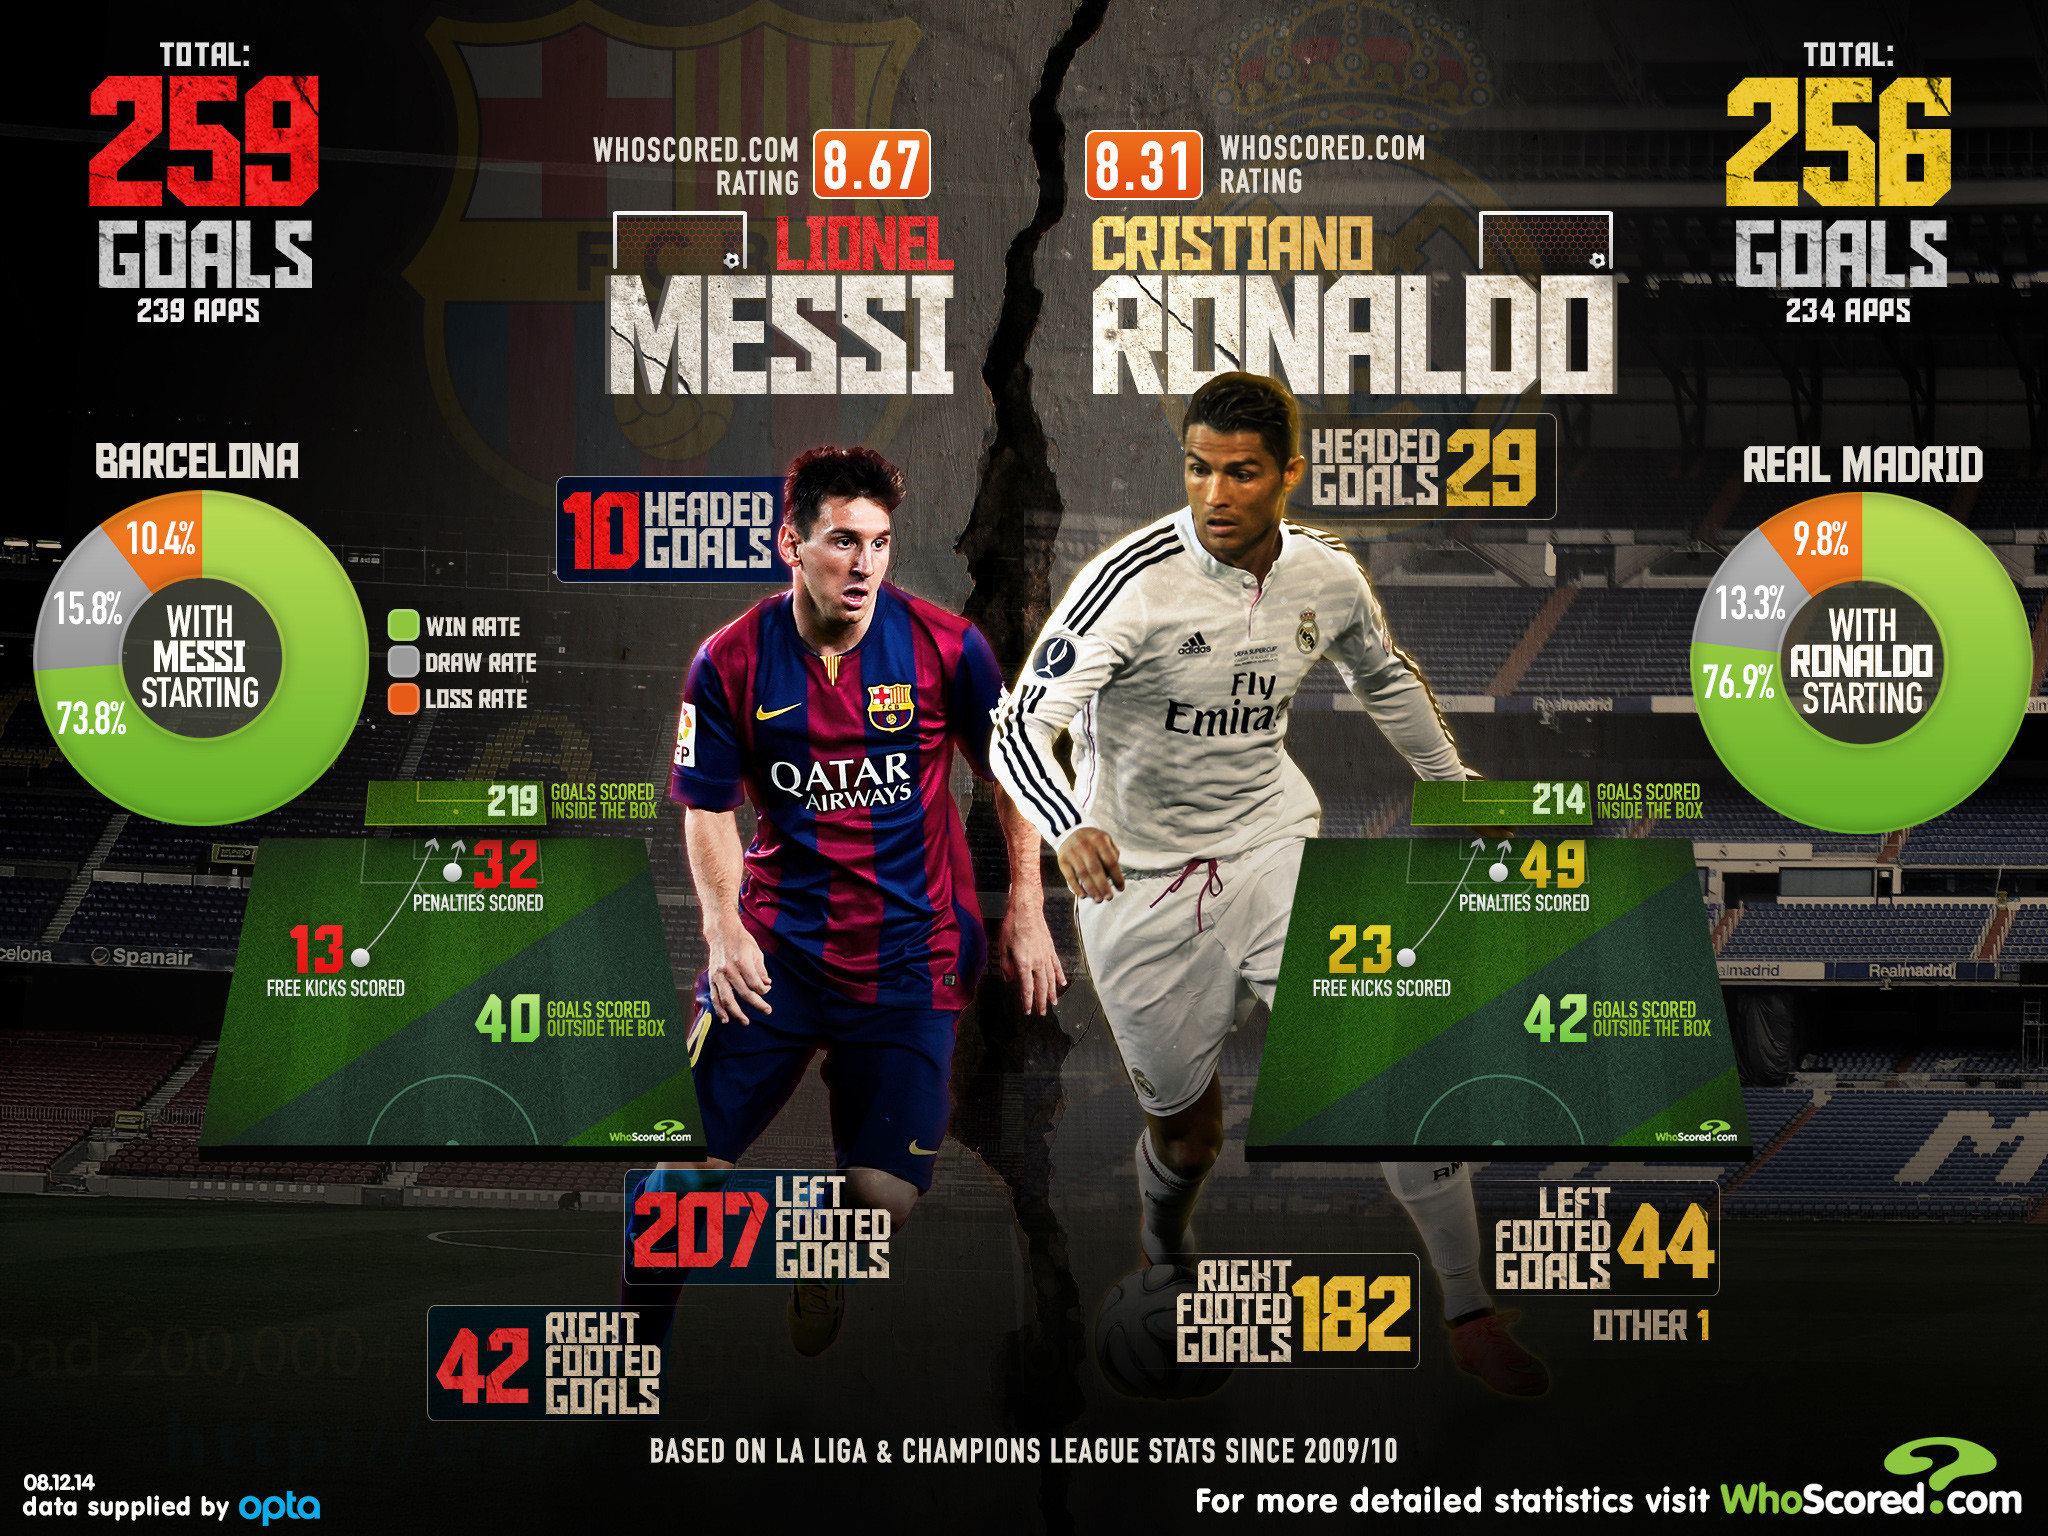 2048x1536 Lionel Messi vs Cristiano Ronaldo: Barcelona and Real Madrid stars have  almost identical statistics since 2009 | The Independent